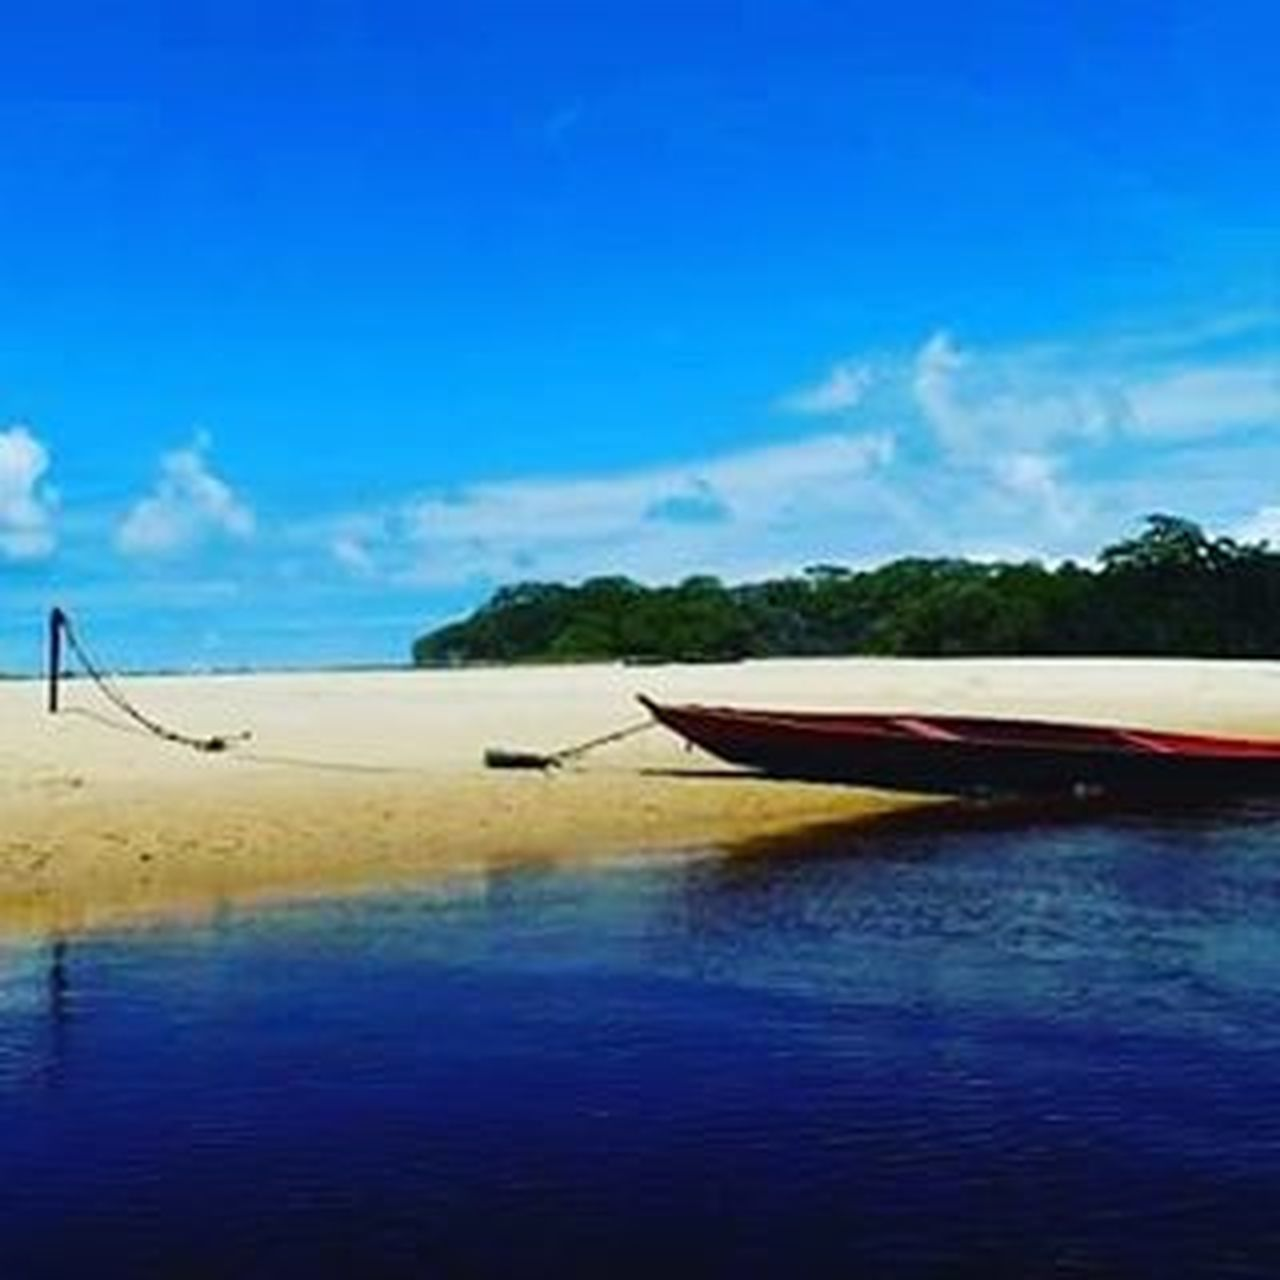 Rio Niquim - Alagoas - Brasil Sea Water Beach Sky Blue Reflection Cloud - Sky Nature Vacations Nautical Vessel Outdoors Tranquil Scene Travel Destinations Scenics Summer Tranquility No People Beauty In Nature Landscape Horizon Over Water